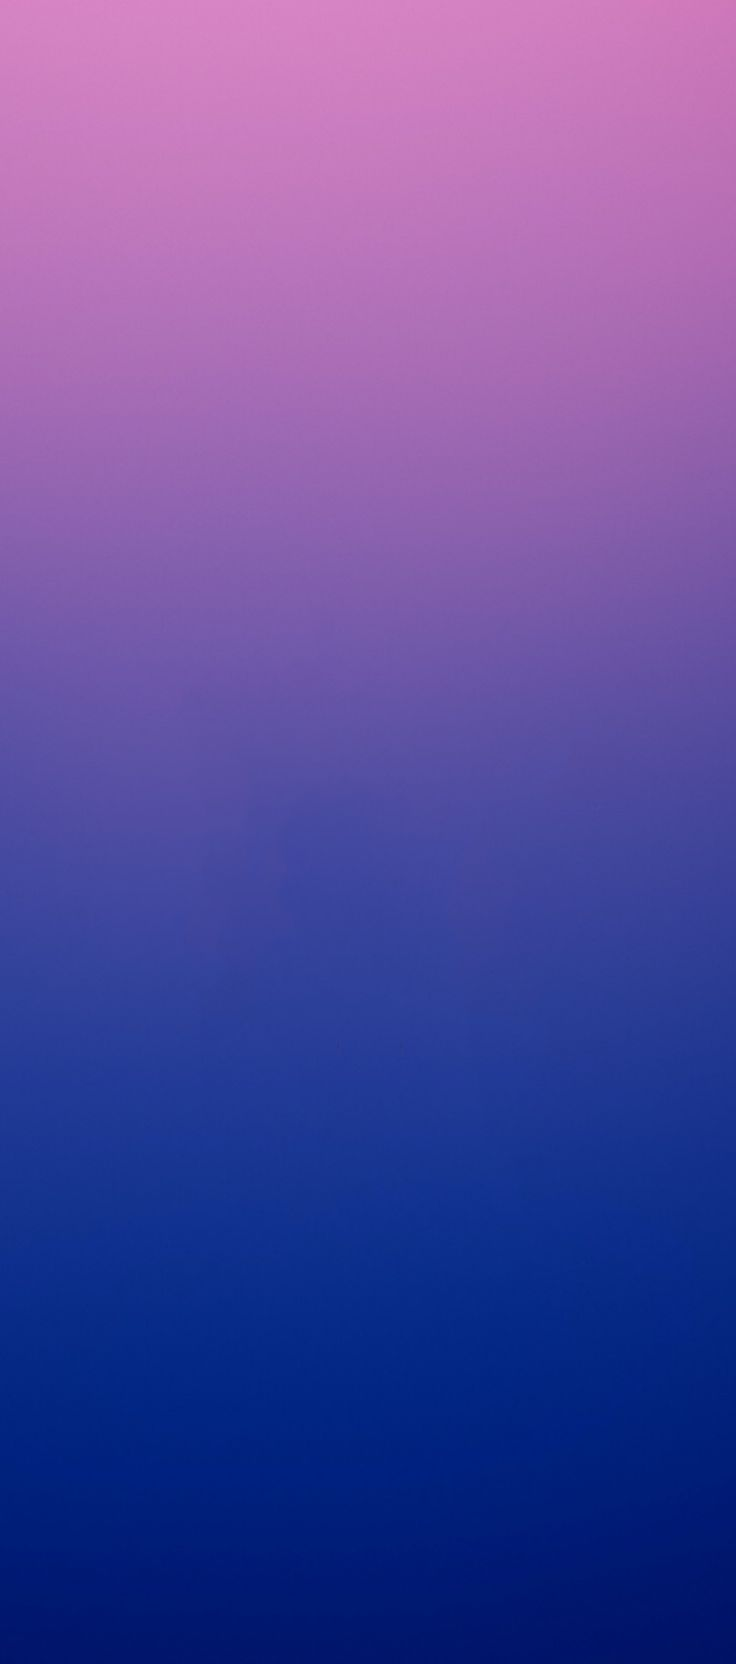 iOS 11, iPhone X, purple, pink, blue, clean, simple, apple, wallpaper, iphone 8, clean, beauty, colour, iOS, minimal